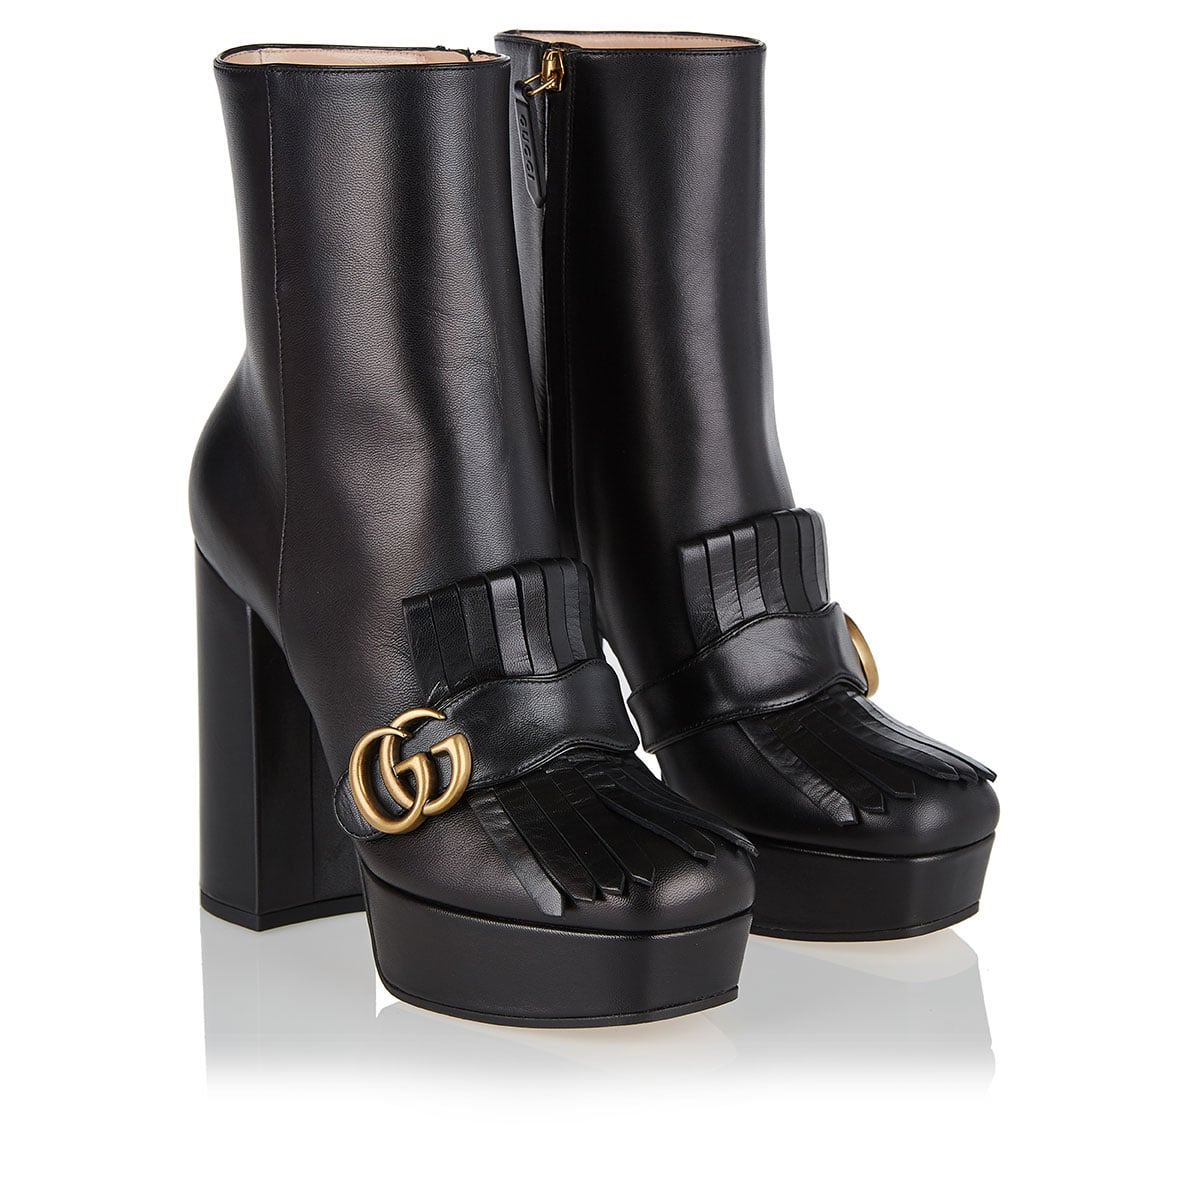 GG platform ankle boots